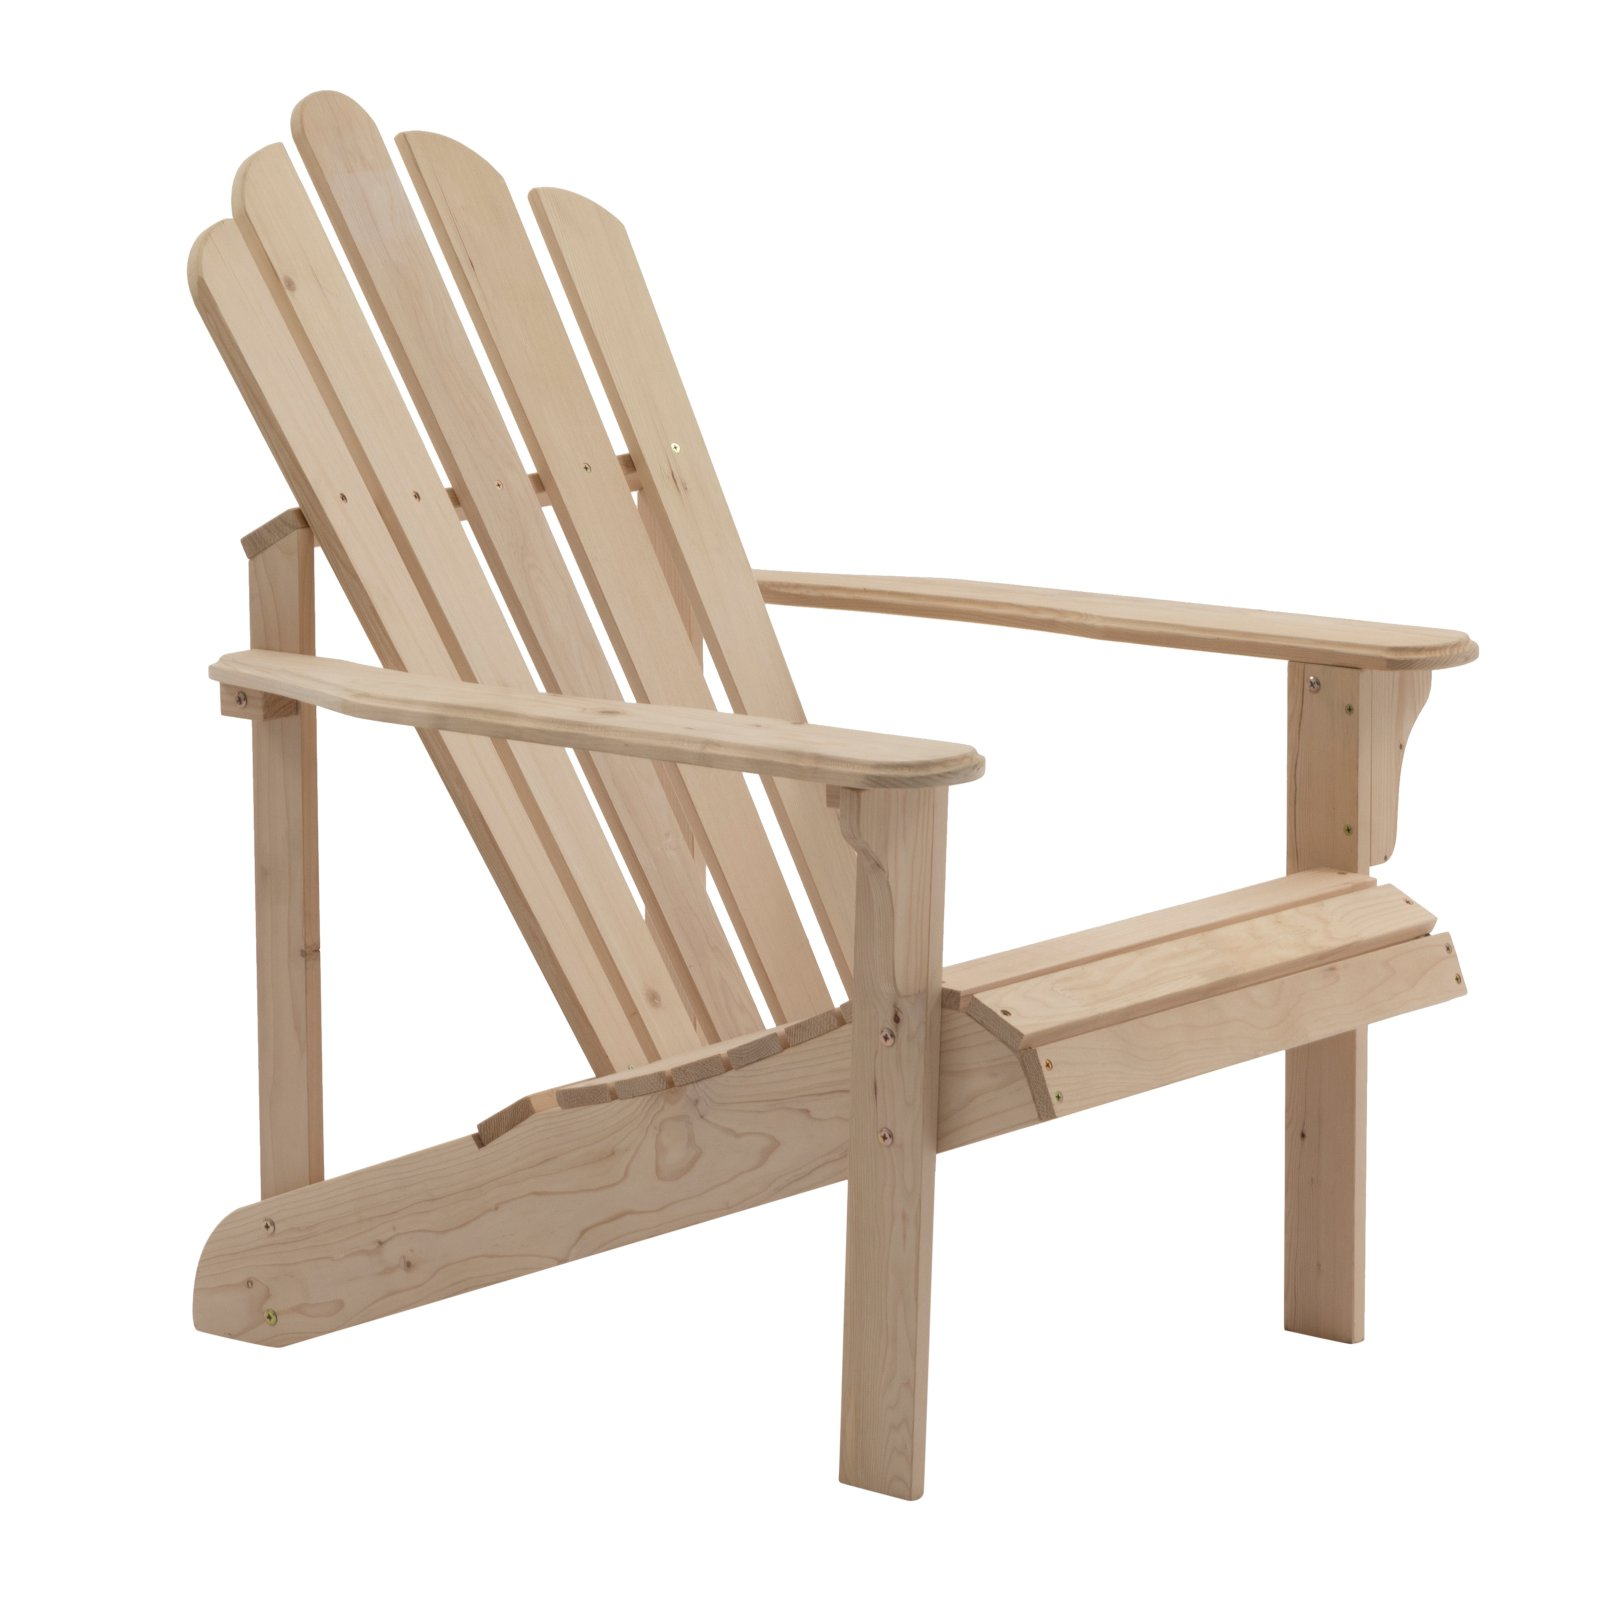 Outdoor Coral Coast Hubbard Wooden Adirondack Chair Unfinished